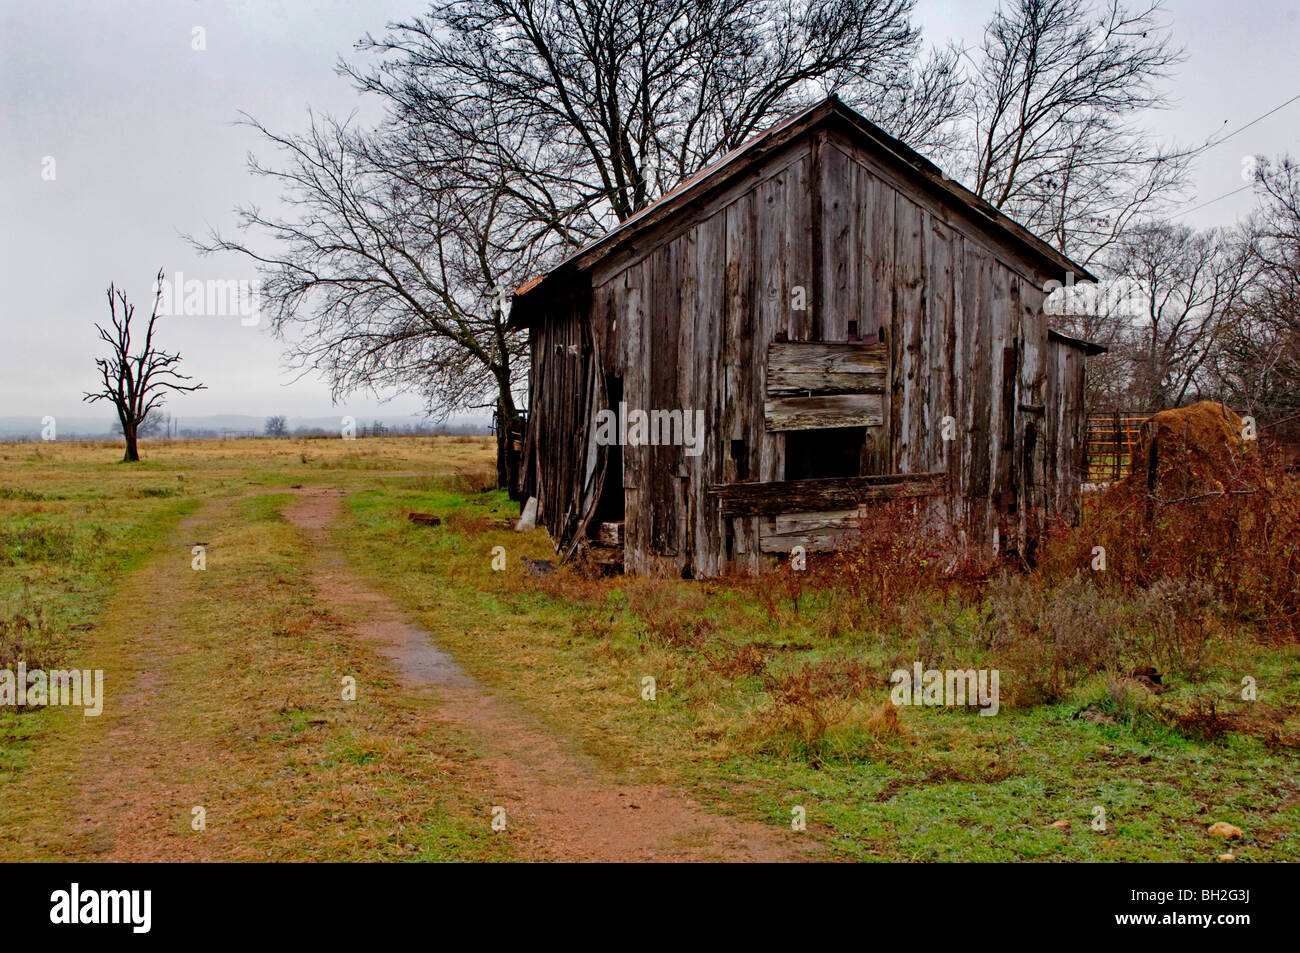 1920s era worn and weathered, rustic barns and commercial buildings from  yesteryear show the years in an American west farmtown